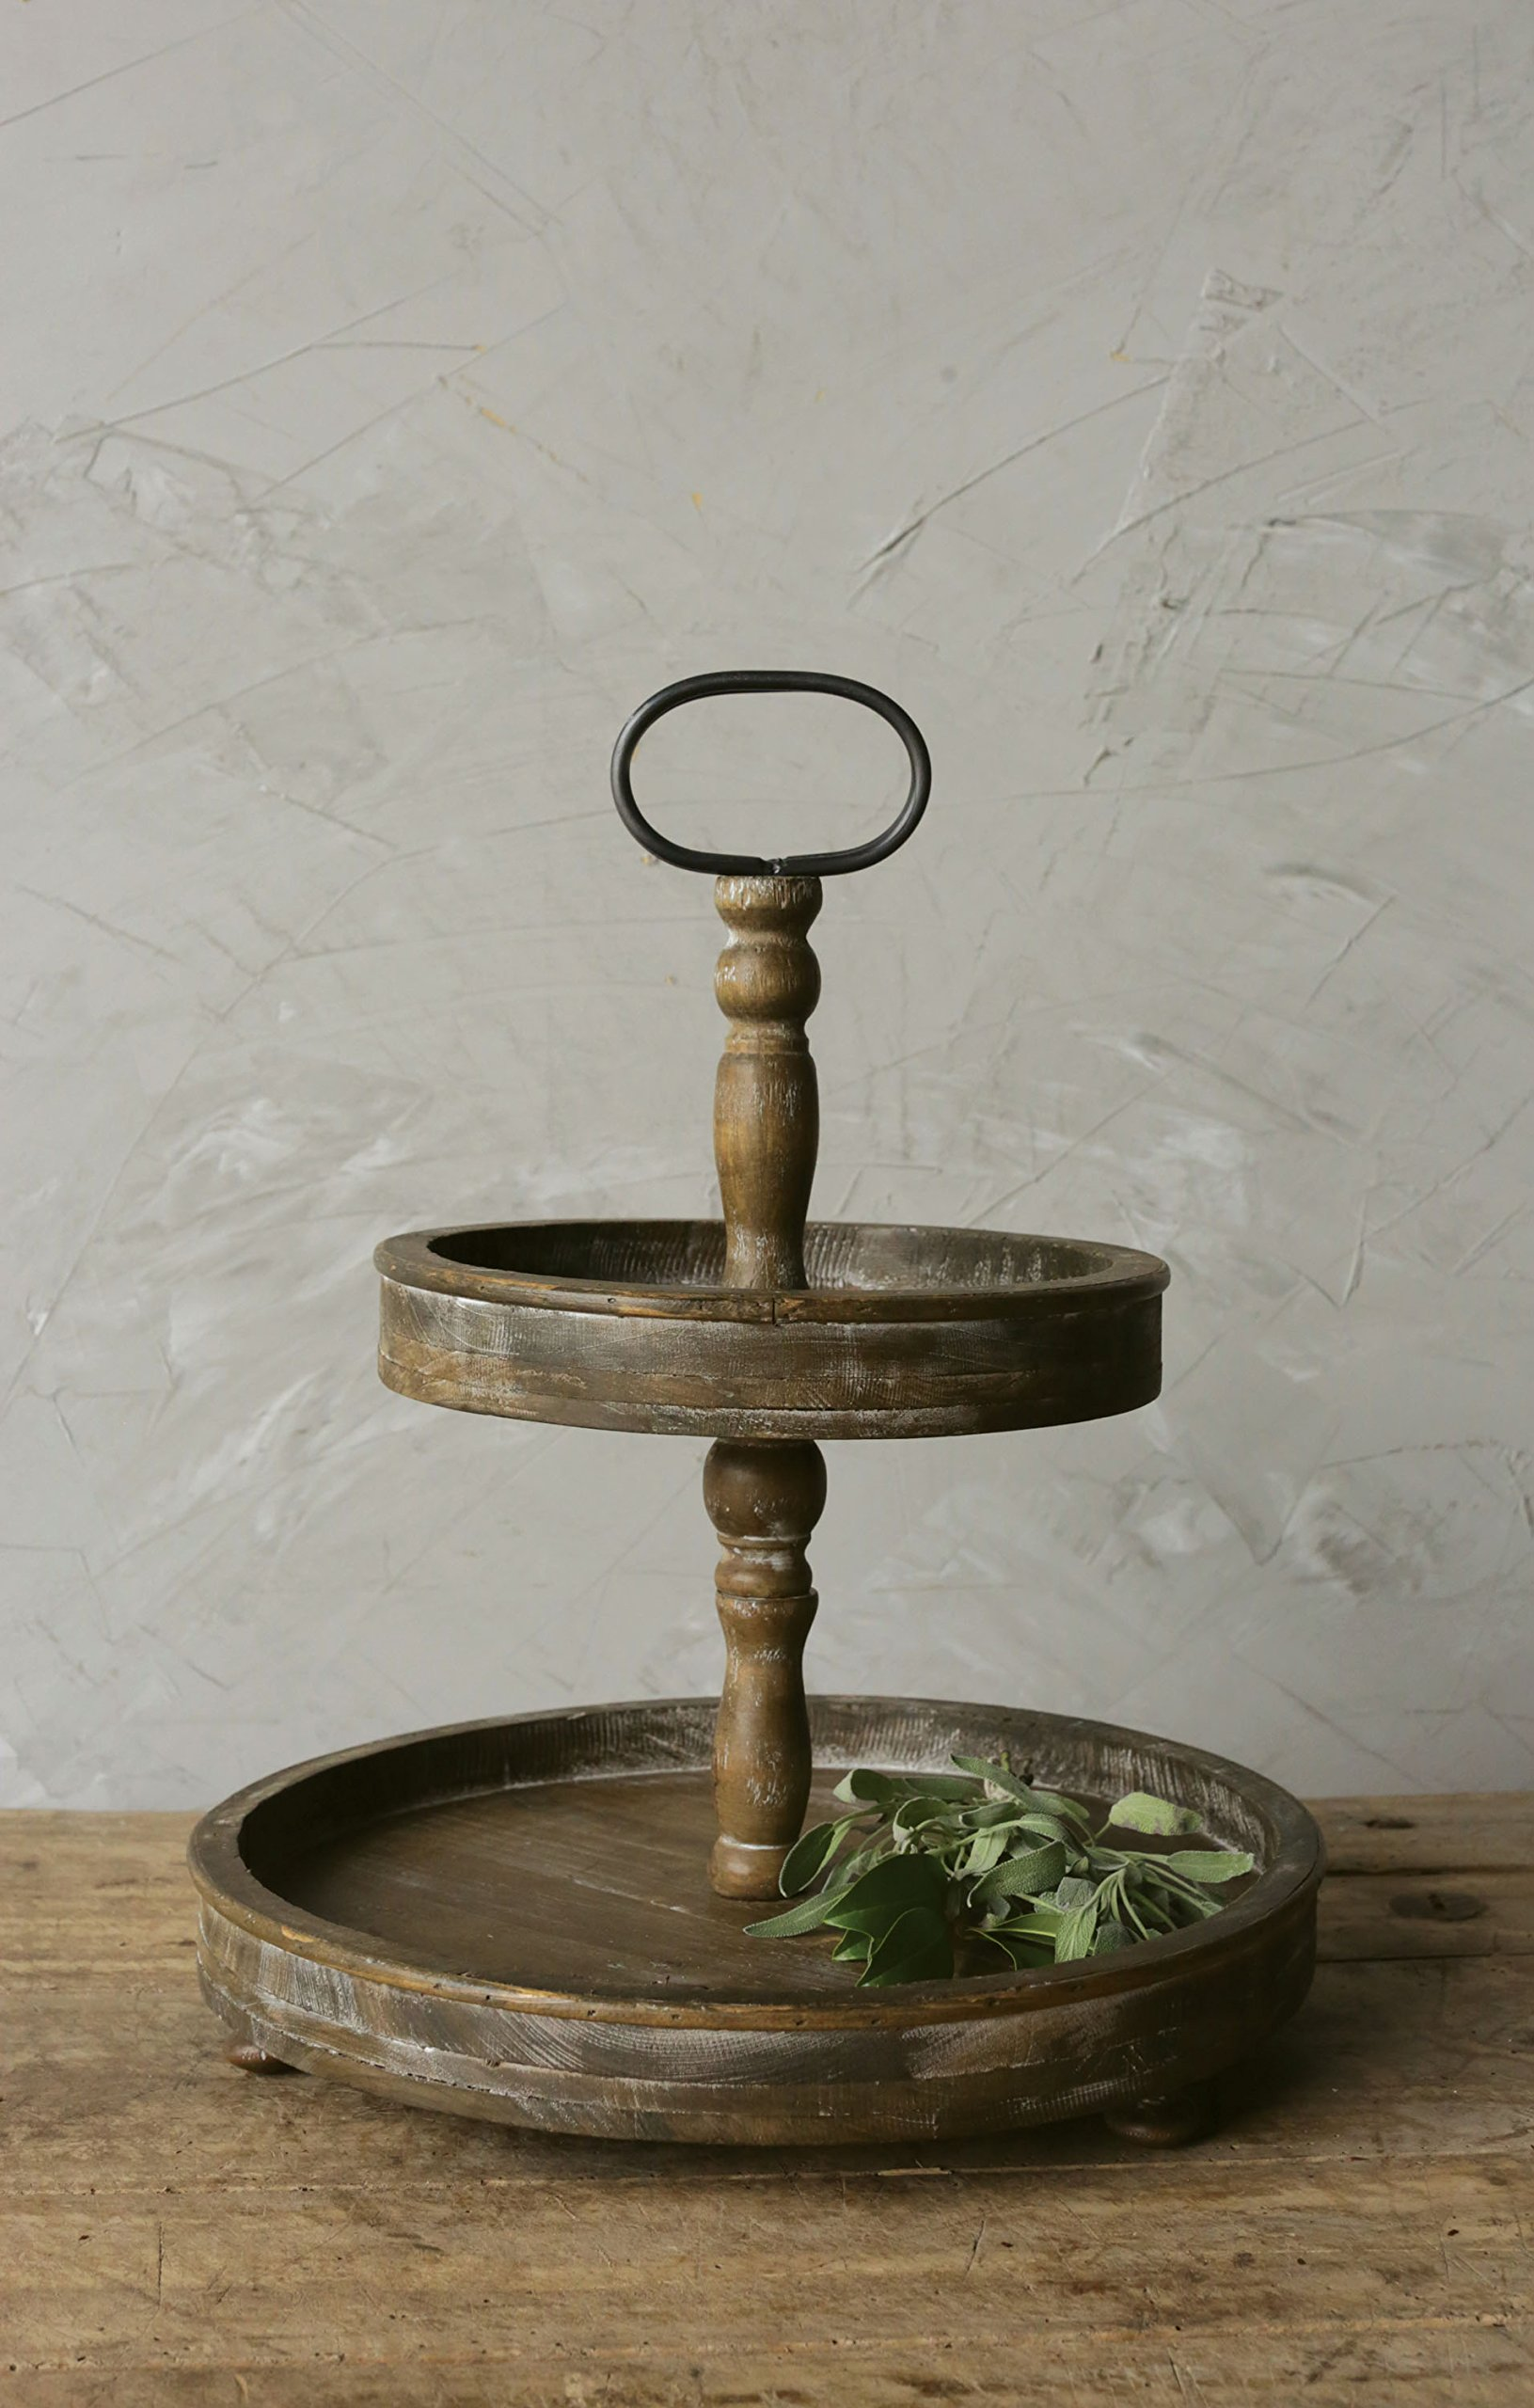 Creative Co-op DA4439 Wood 2-Tier Tray with Metal Handle by Creative Co-op (Image #2)